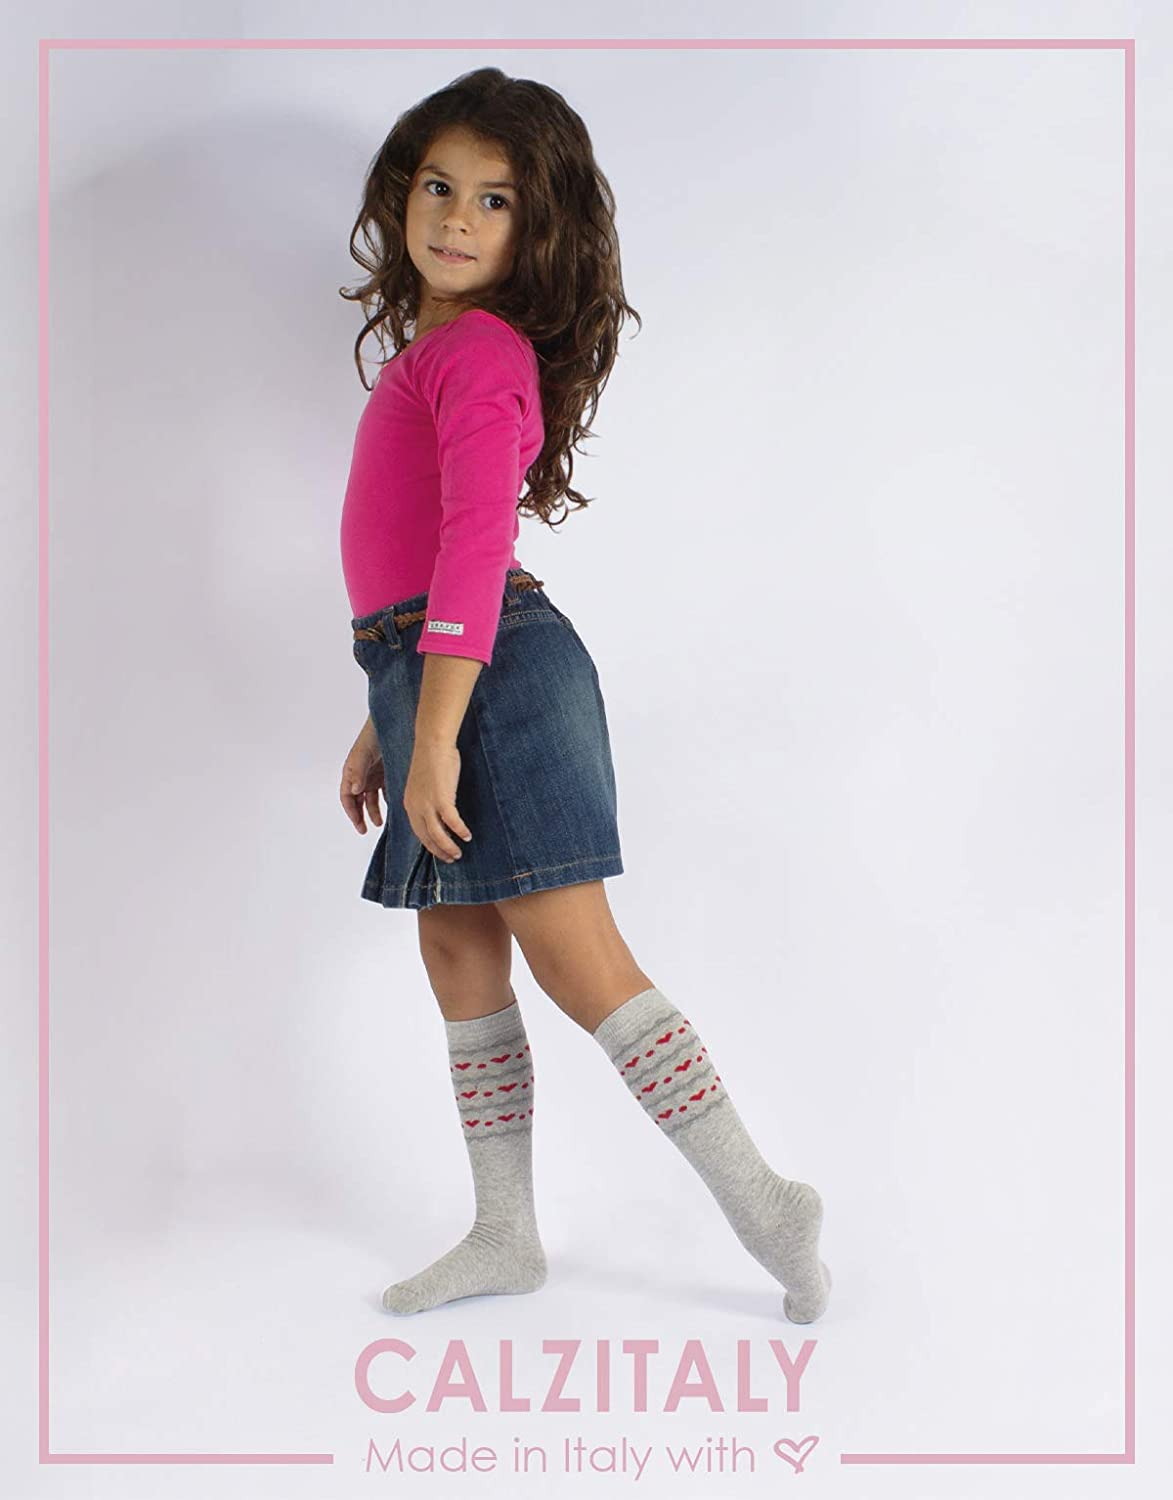 KIDS KNEE HIGH BLUE 11//1 WARM LONG SOCKS GREY 2//5 SIZES 7//10 PINK ITALIAN HOSIERY | 3 PAIRS GIRLS COTTON SOCKS